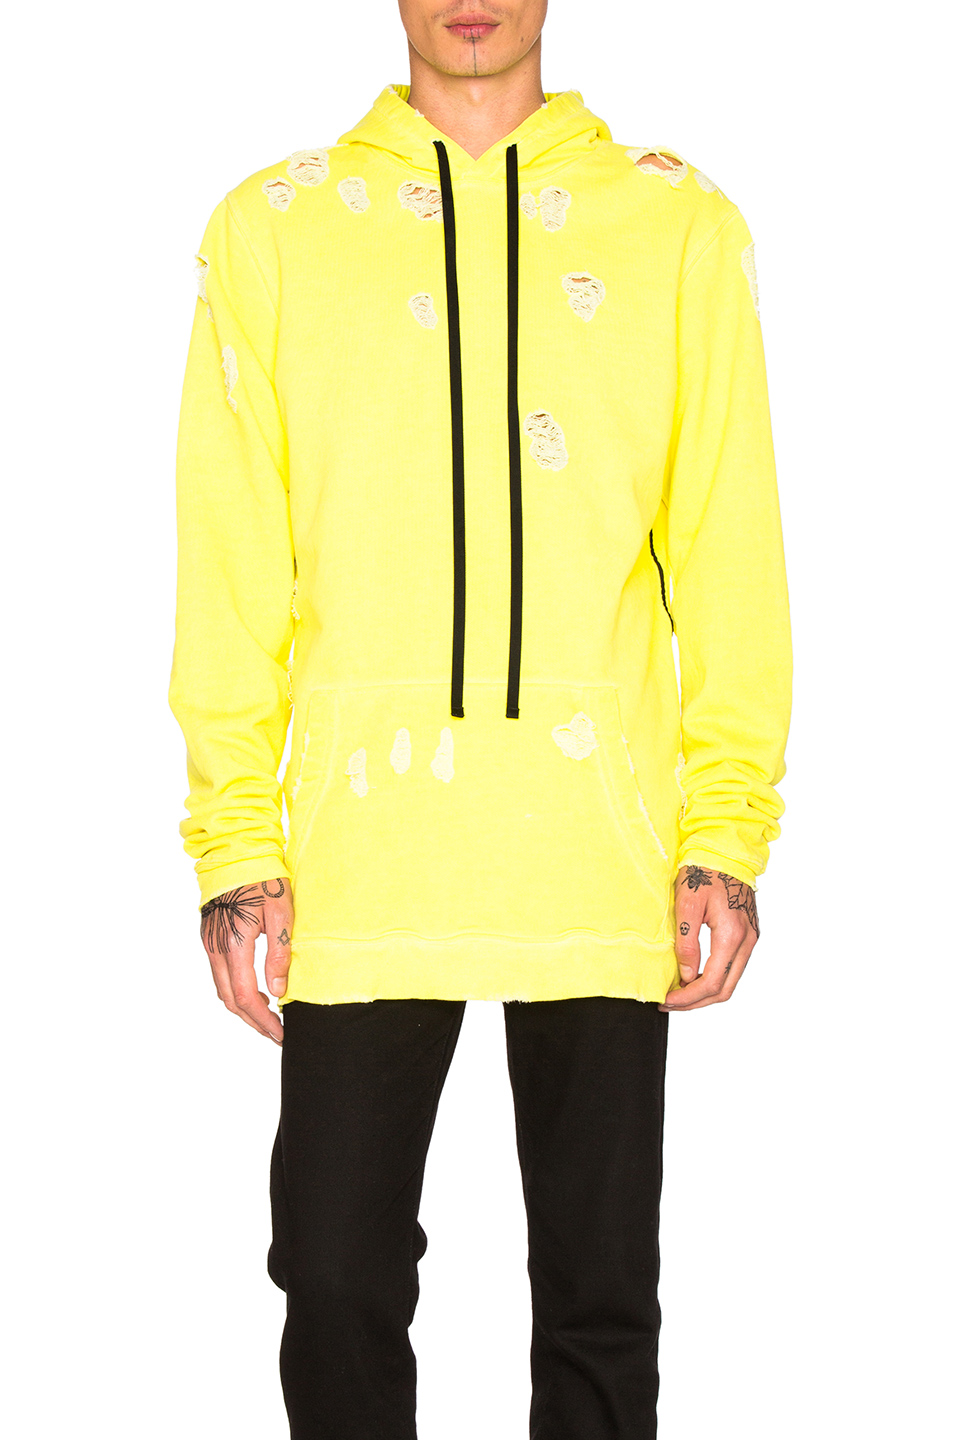 Unravel for FWRD Oversized Hoodie in Yellow,Neon